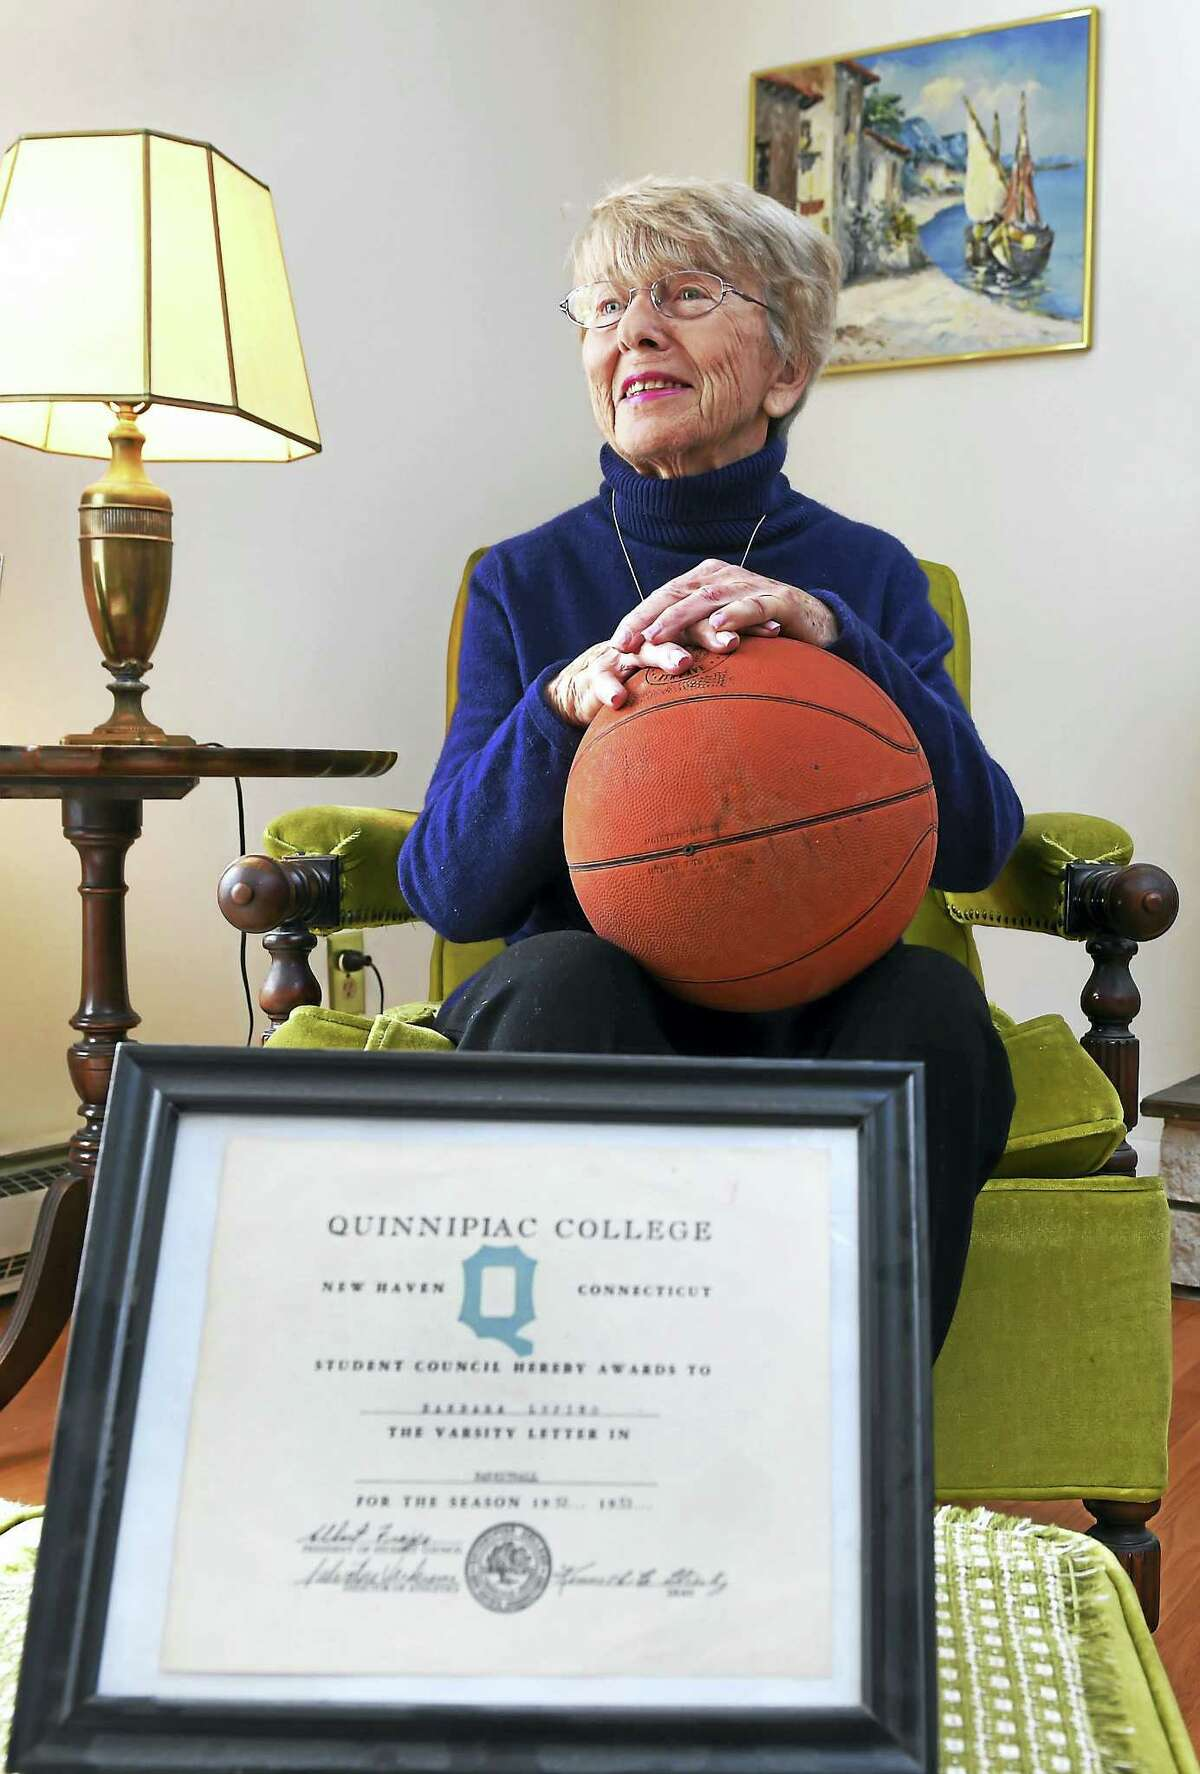 """Barbara Lupino Mecca, 83, of Hamden, sits with a certificate recognizing her as receiving a Quinnipiac College varsity letter for the schools' first women's basketball team coached by New Haven coaching legend Salvatore """"Red"""" Verderame during the 1952-1953 season."""